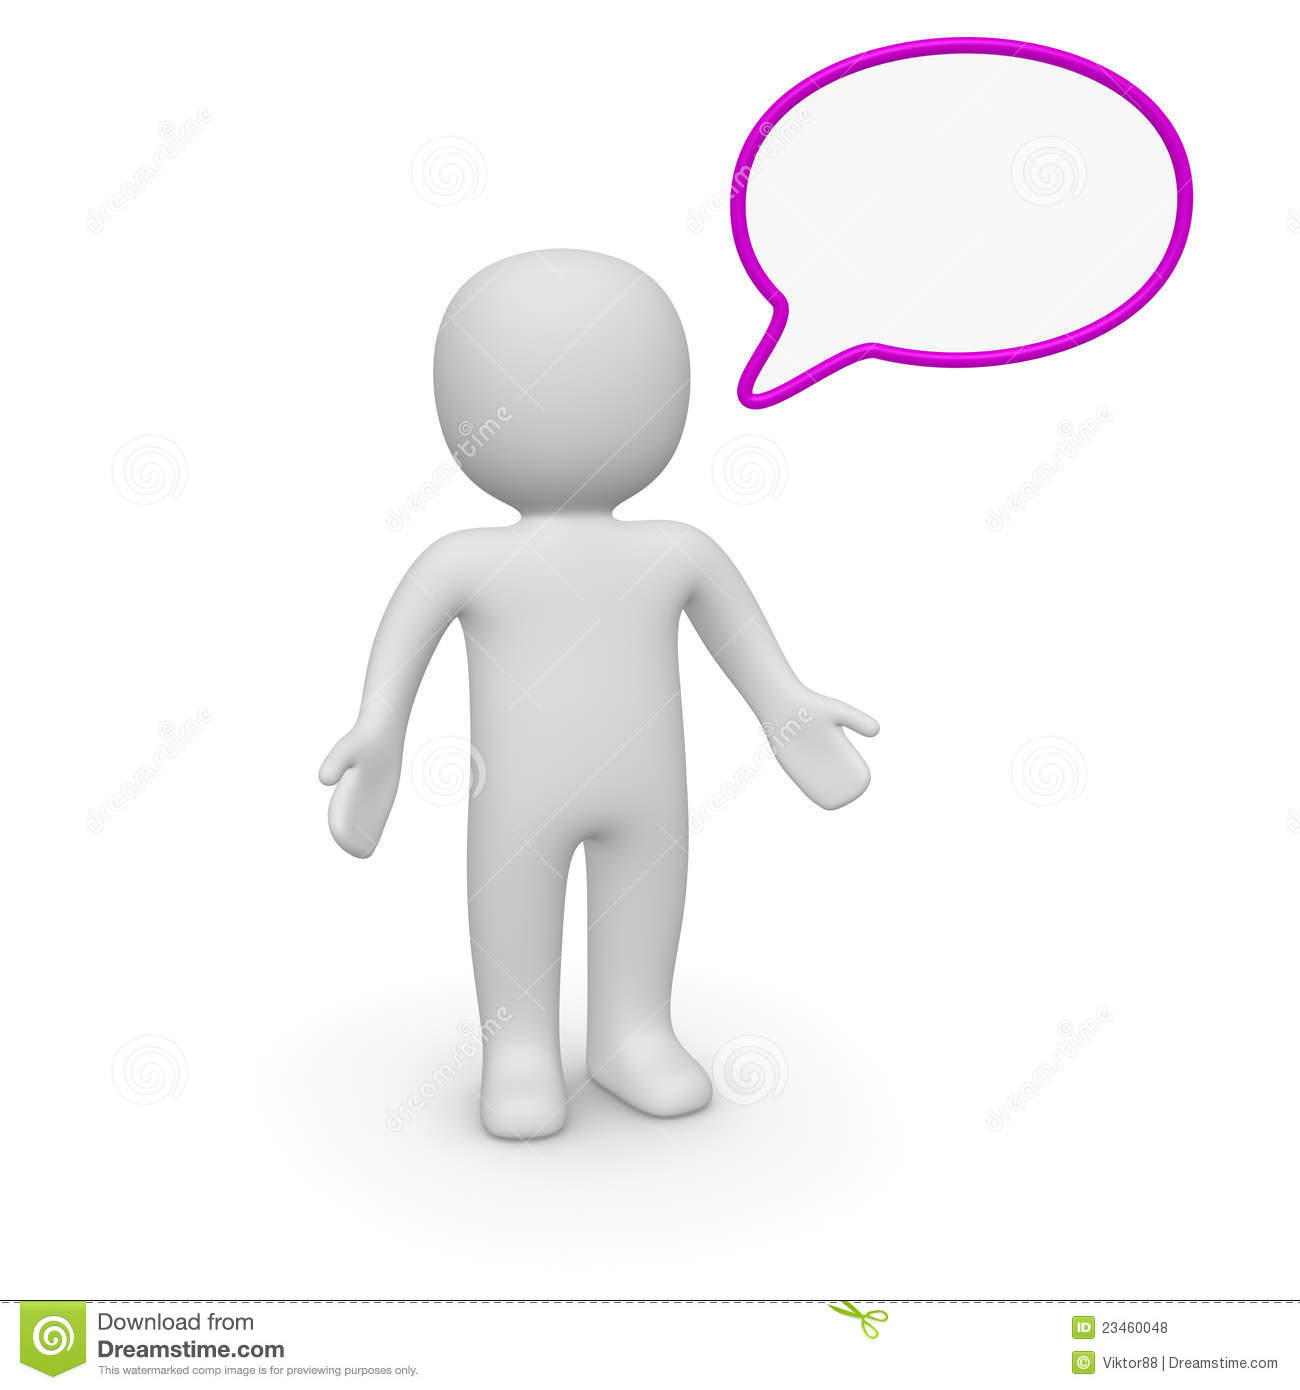 Clipart Person With Speech Bubble.